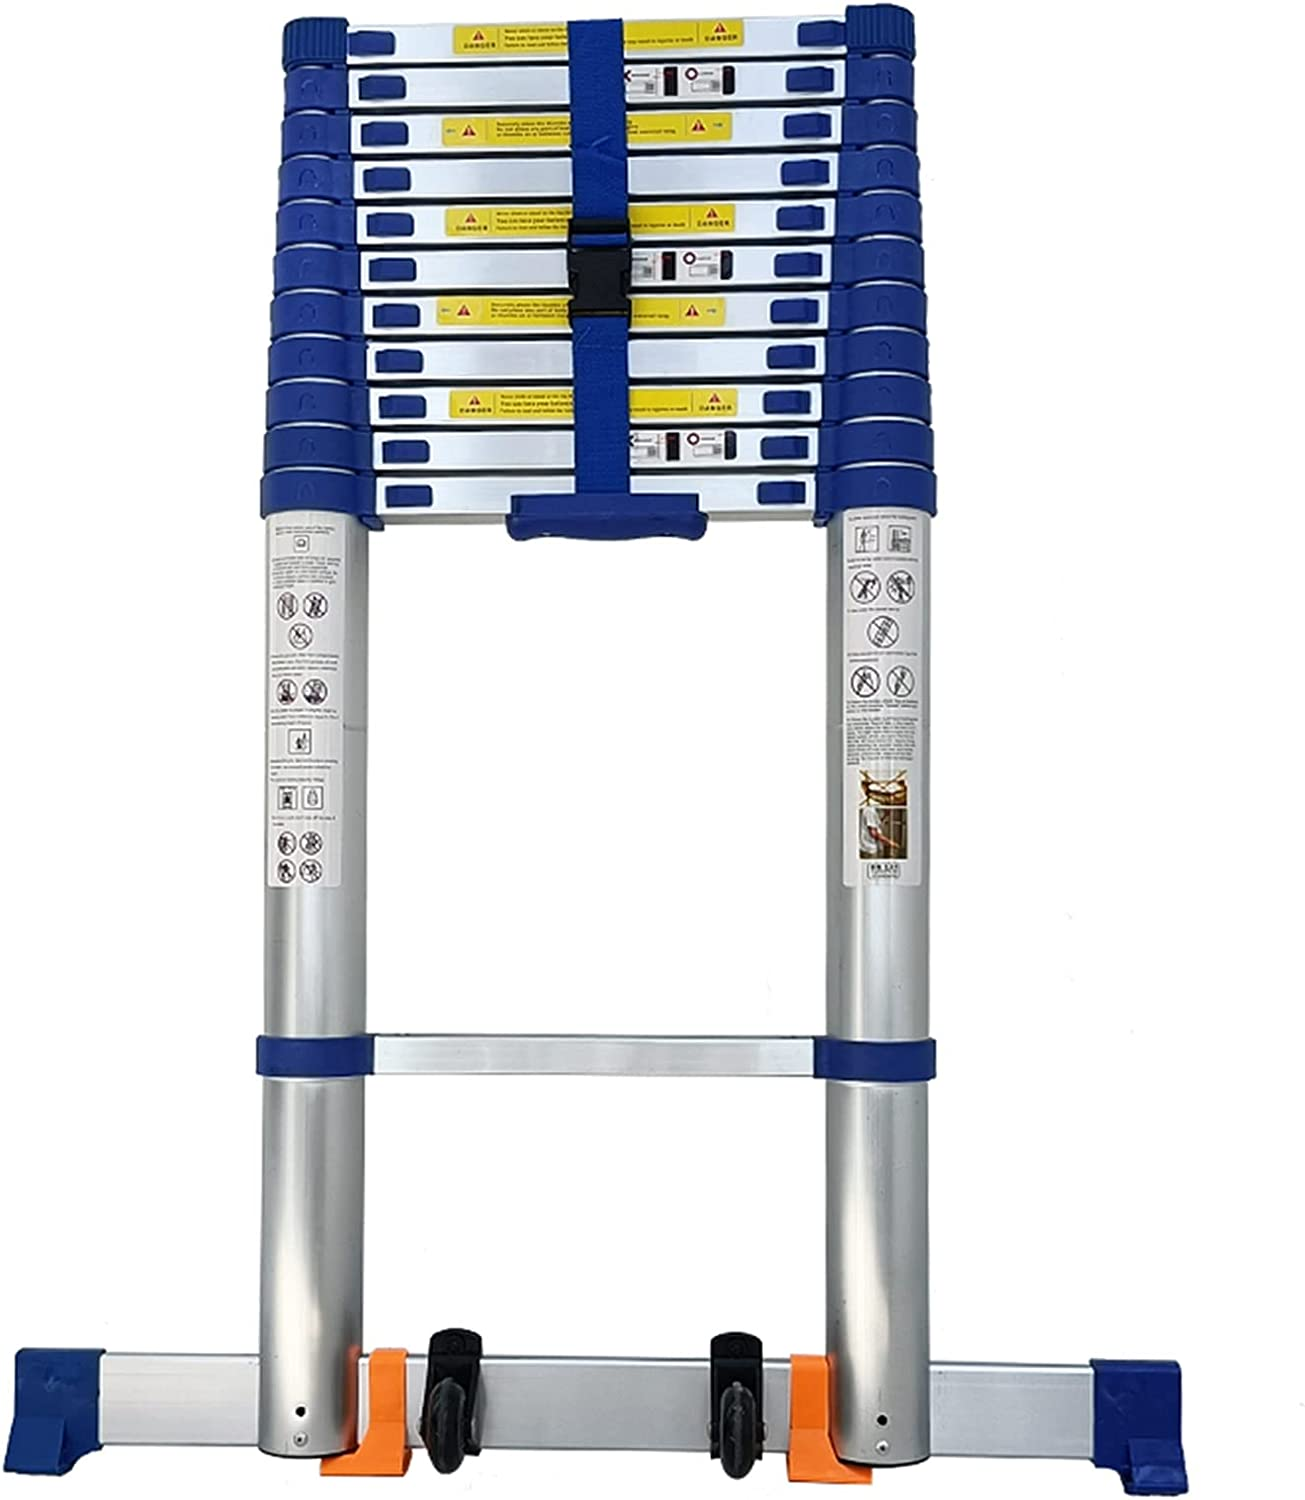 Telescoping Ladder Compact Oklahoma City Mall Extension 26.5ft Seattle Mall for Home 23